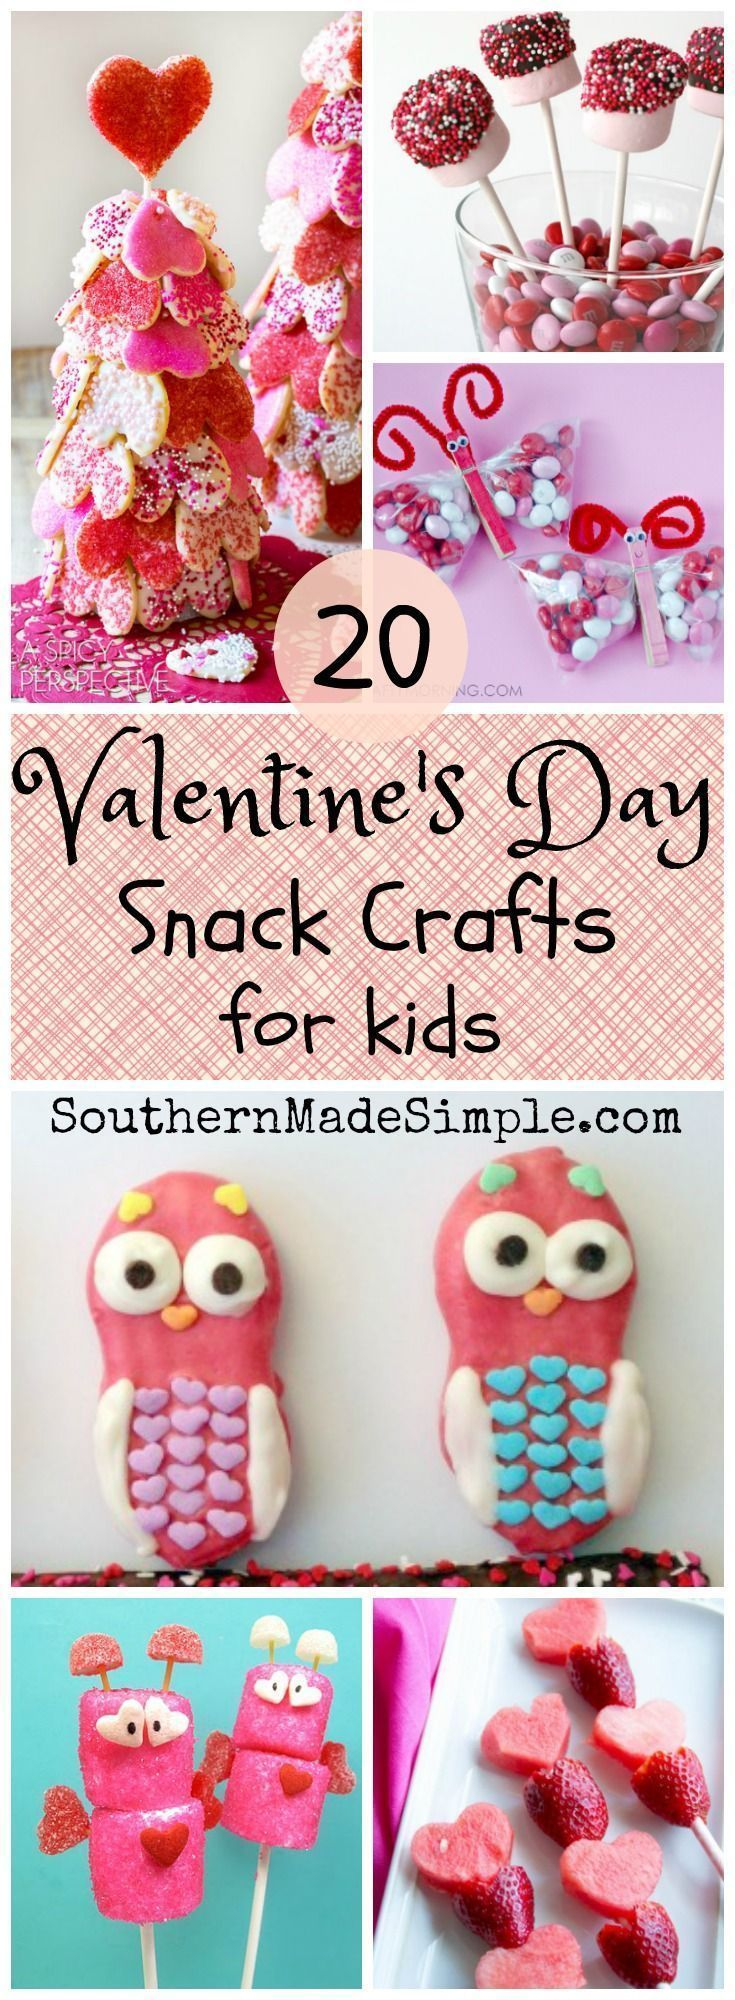 Valentine's Day Snack Crafts for Kids